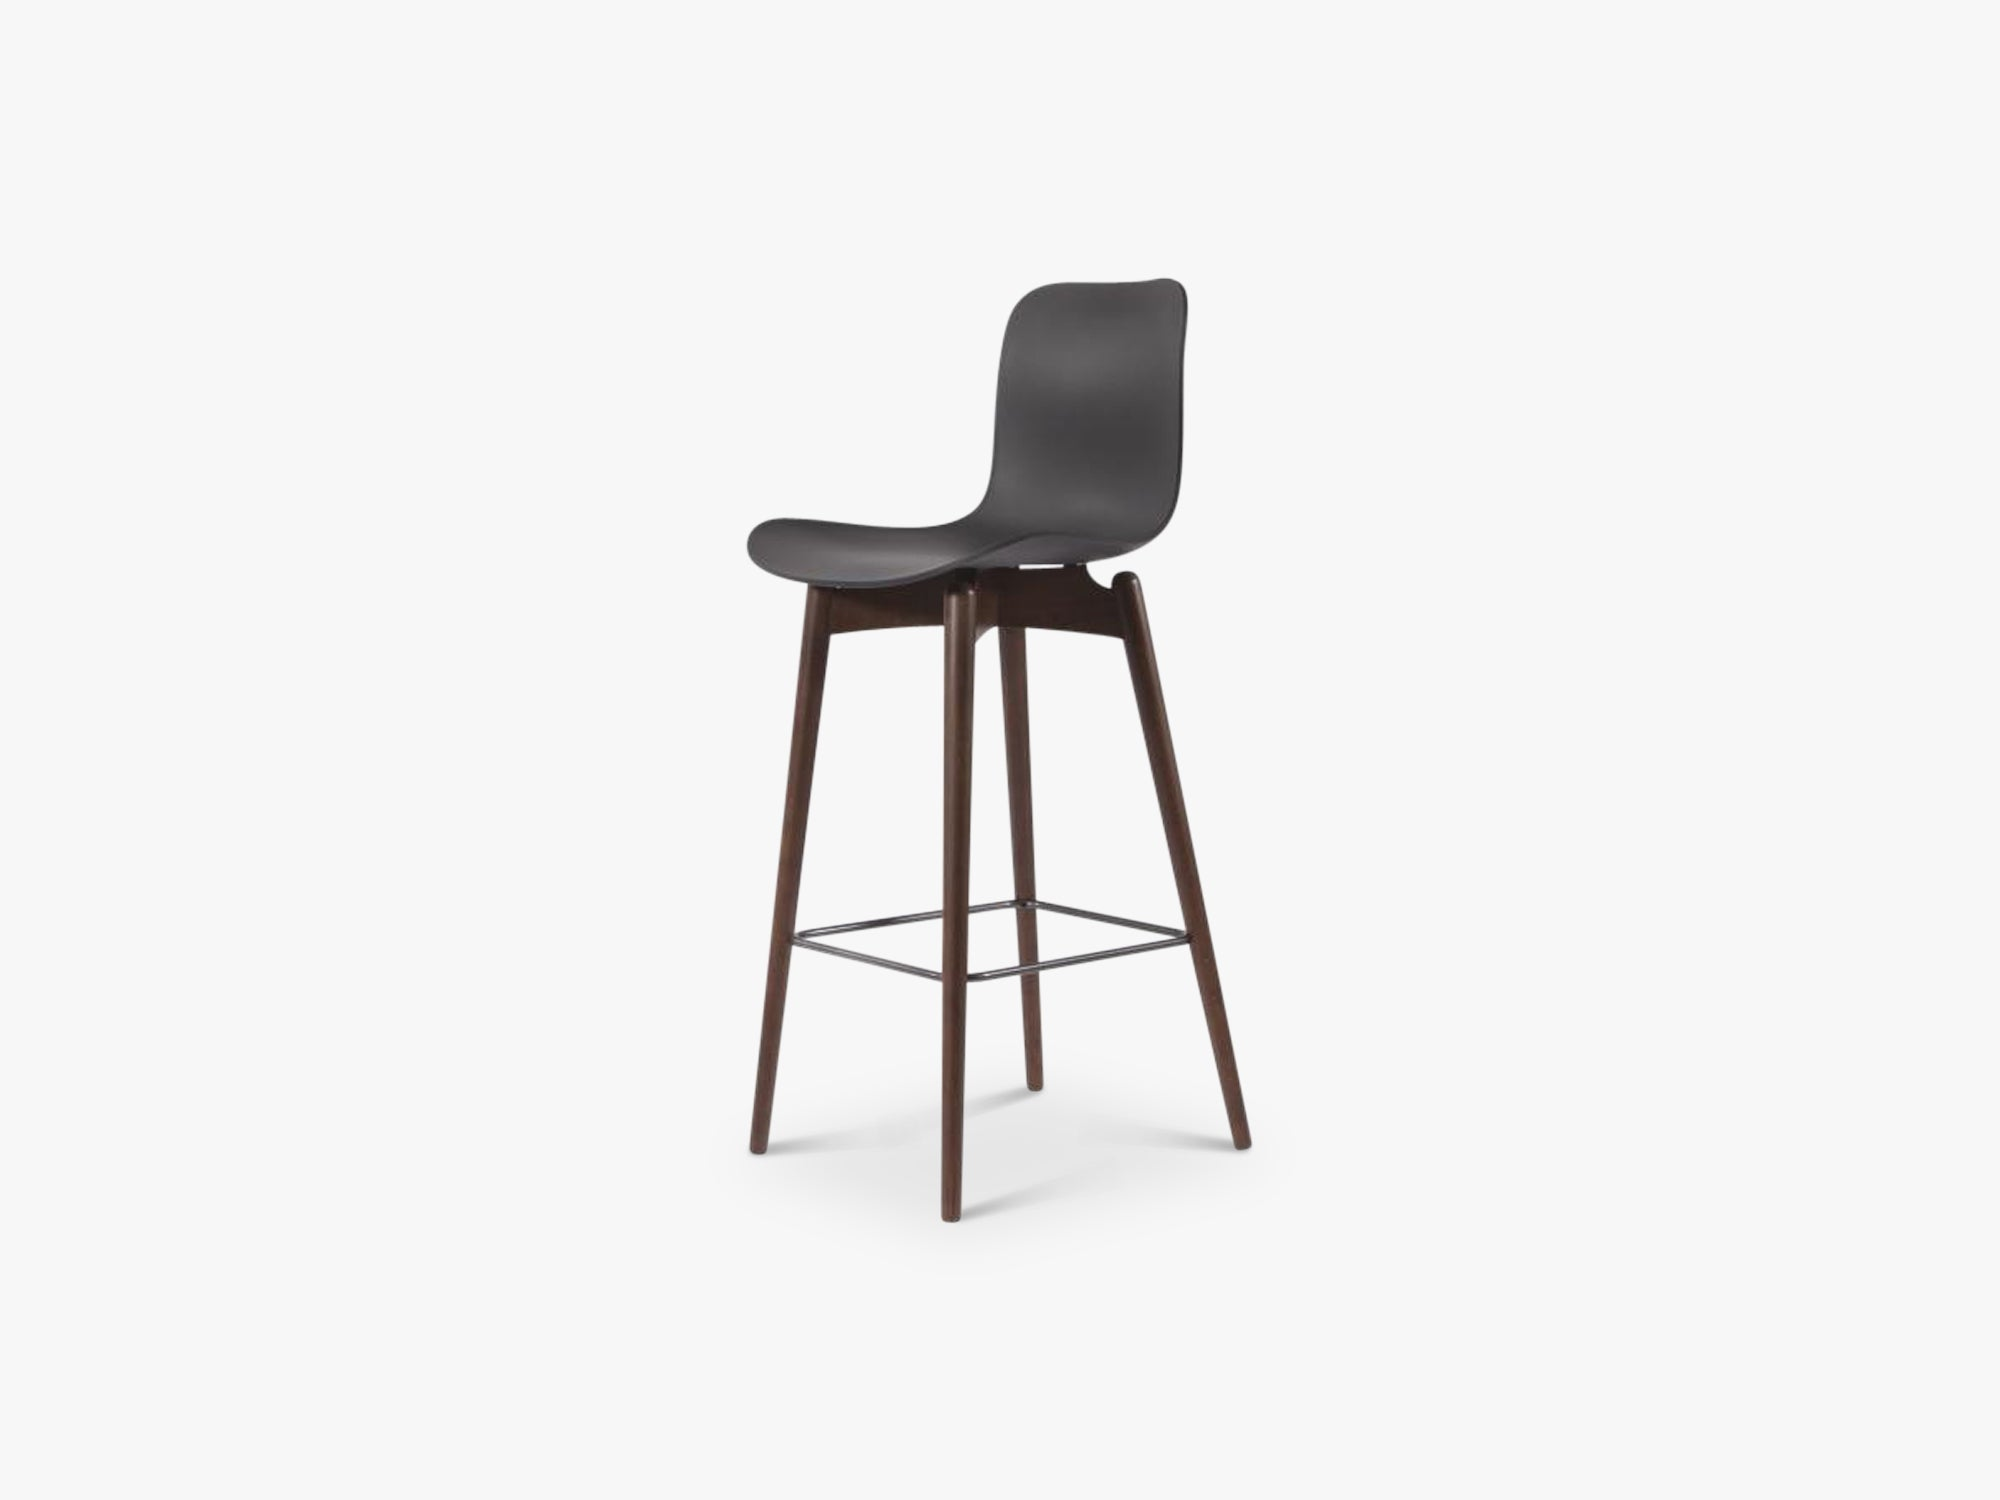 Langue Bar Chair Low, Dark/Anthracite Black fra NORR11